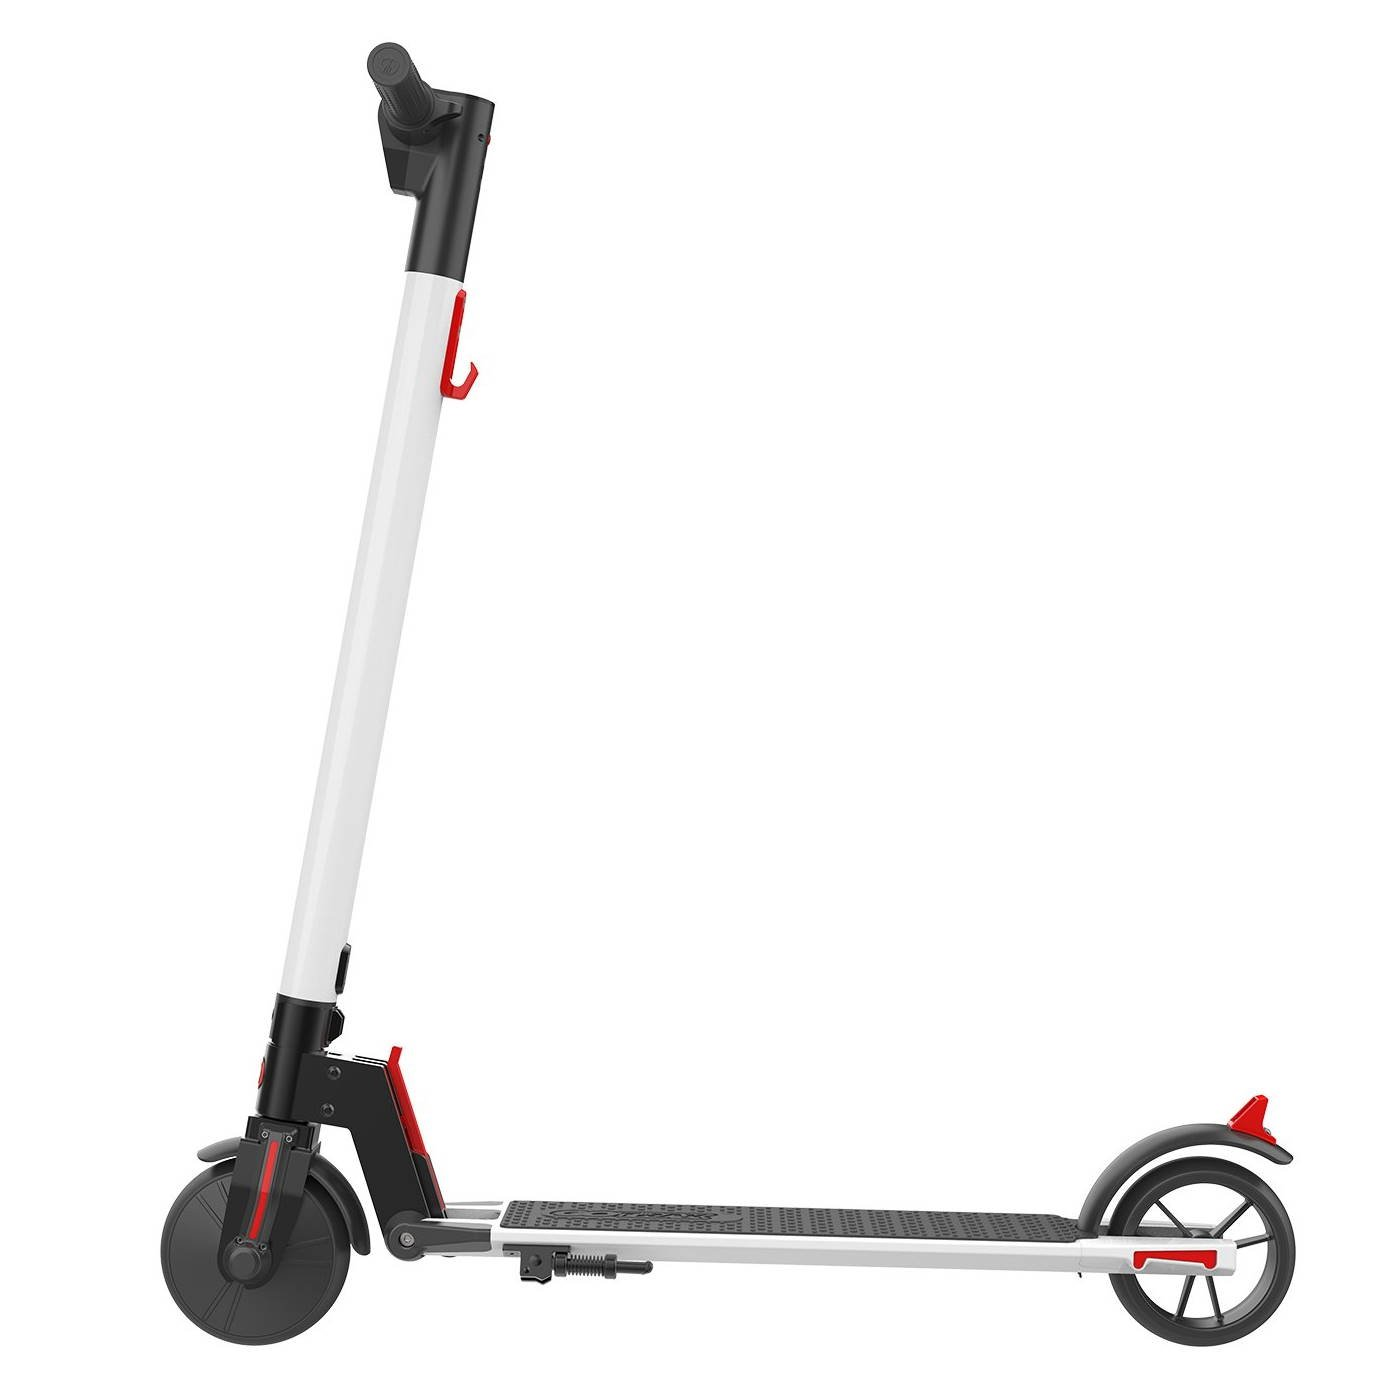 GoTrax G2 Review – Best Electric Scooter Under $250